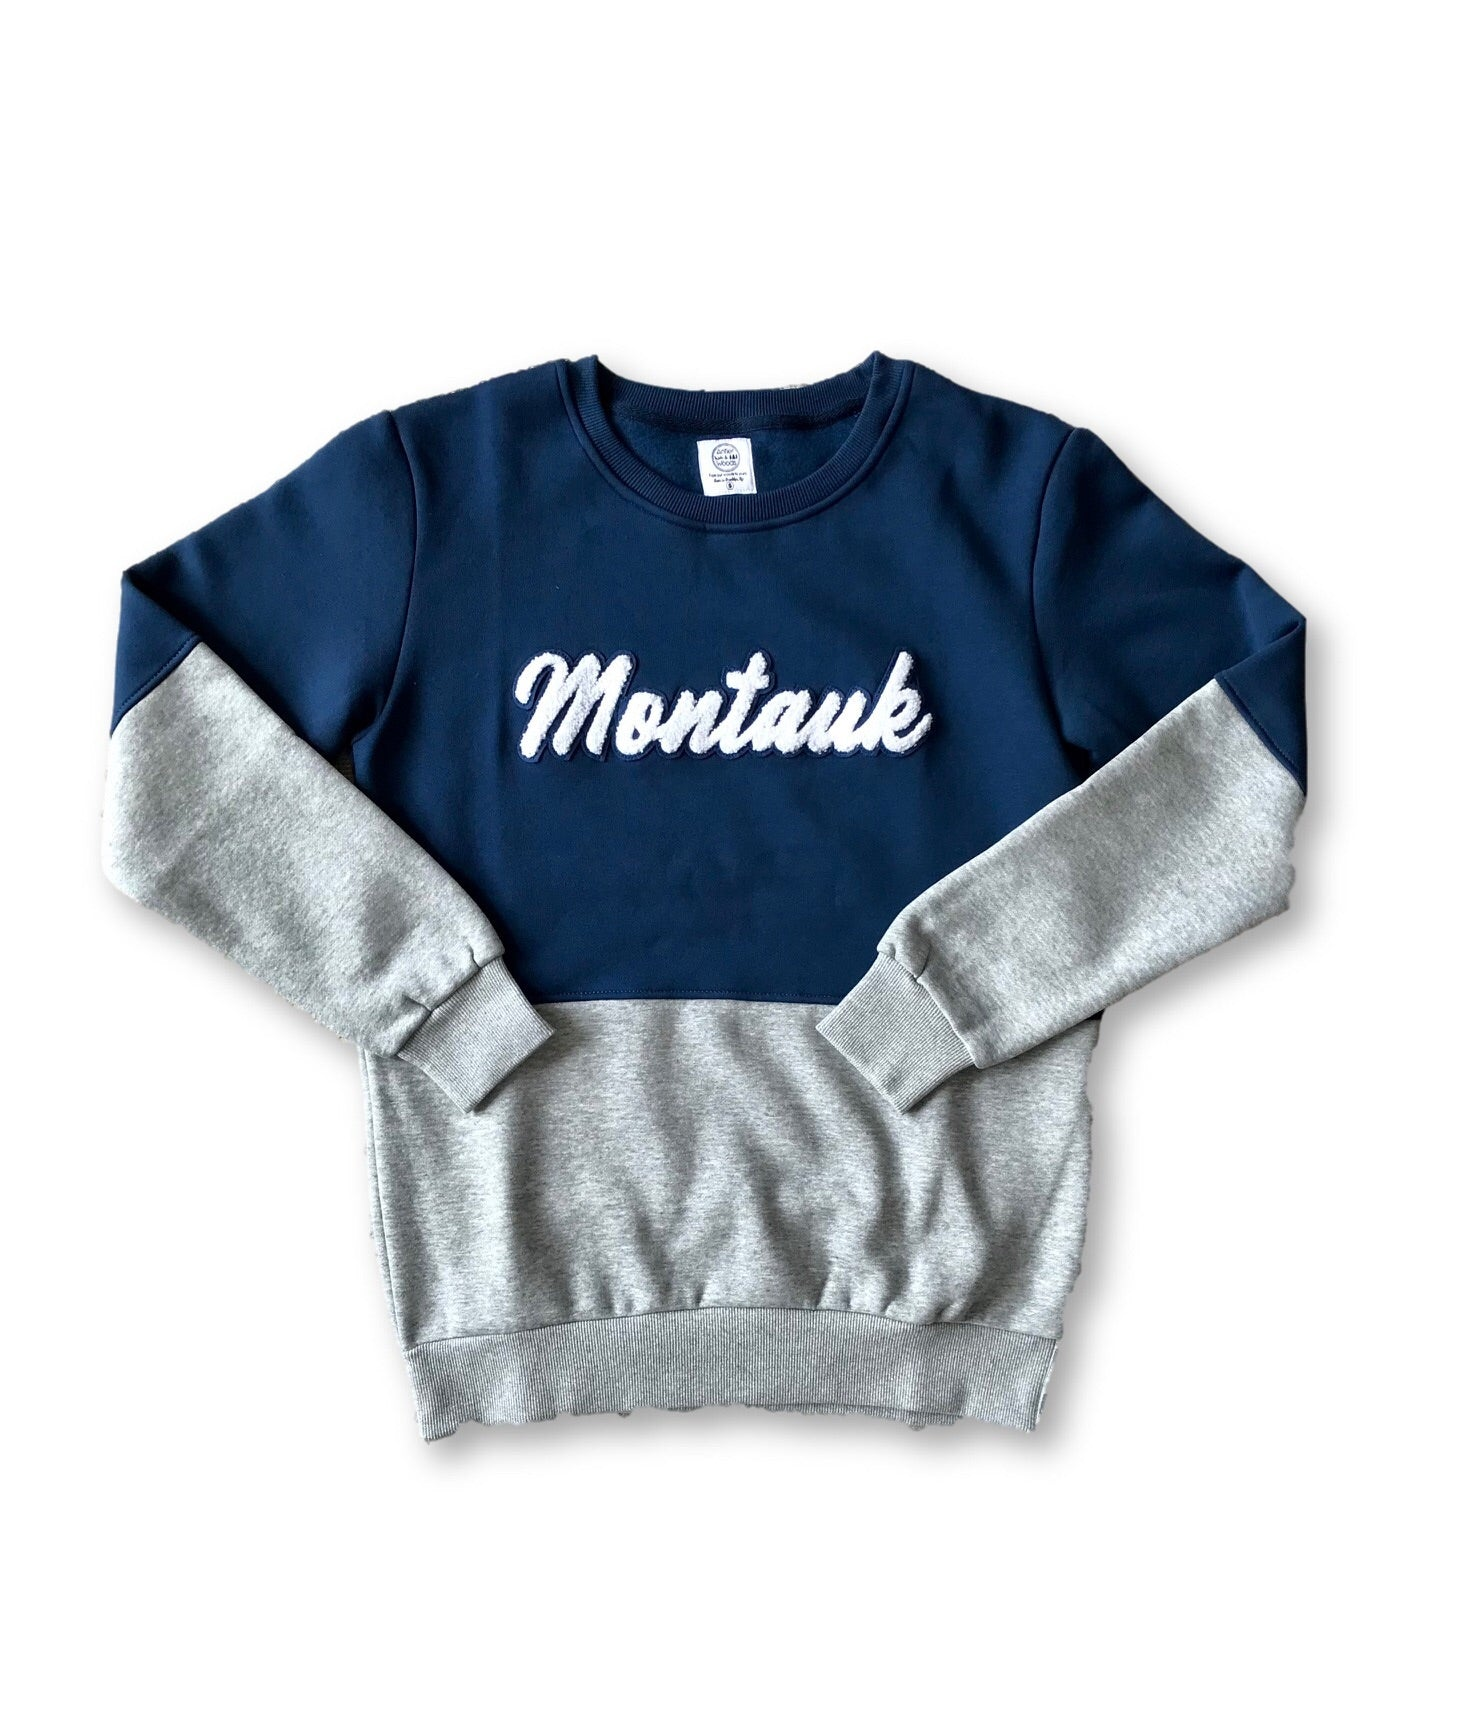 Montauk Fleece Letterman Sweatshirt